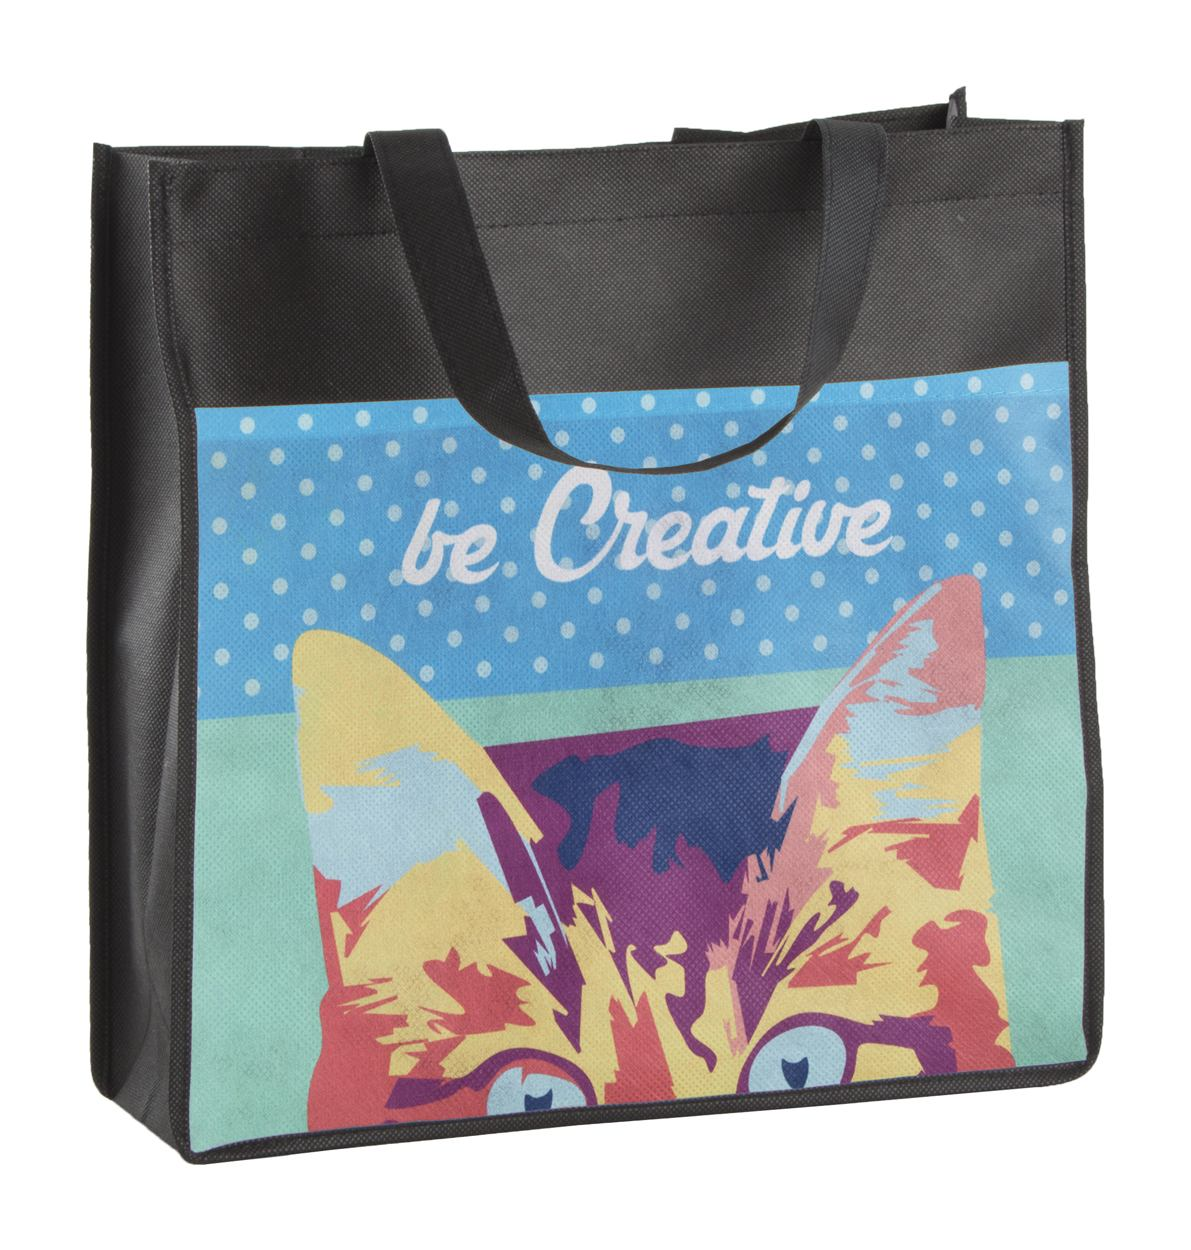 Full color non woven shopper